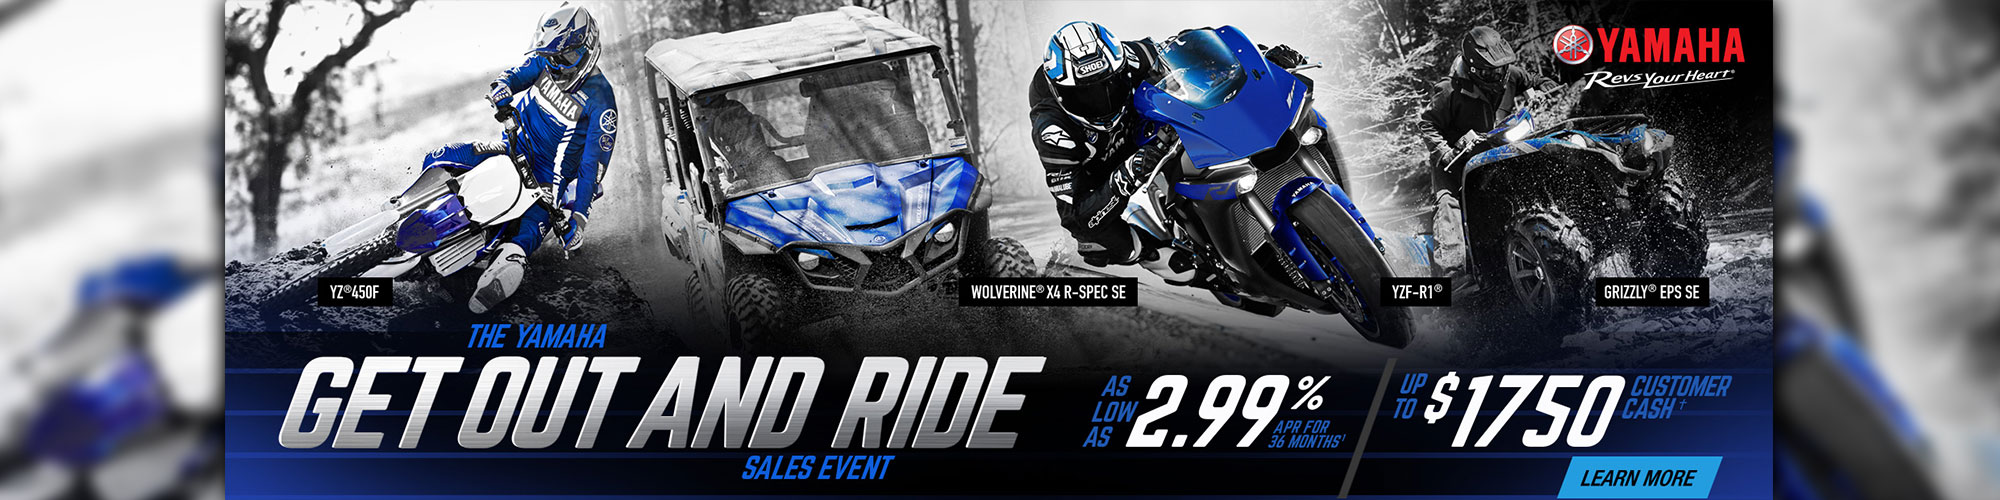 Get Ready To Ride Sales Event